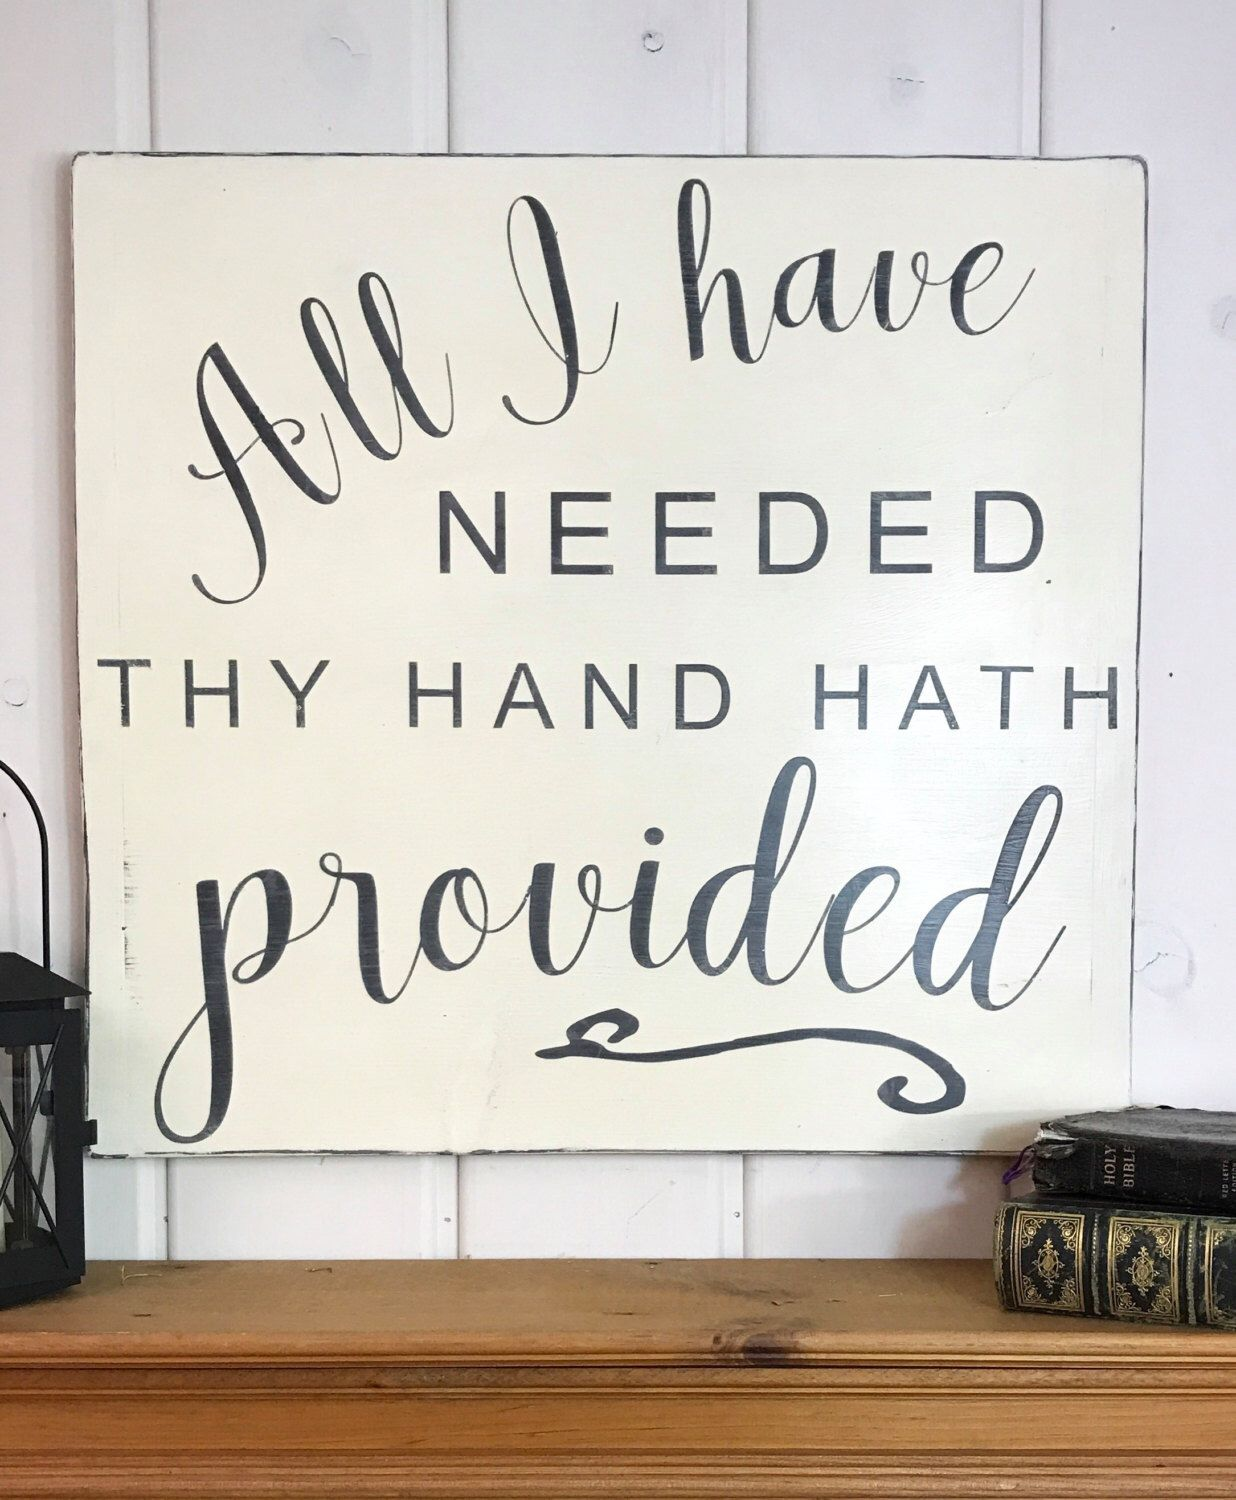 All I Have Needed Thy Hand Hath Provided Christain Wood Painted Sign Rustic Home Decor Great Is Thy Faithfulness Sig Country Decor Rustic Rustic House Decor